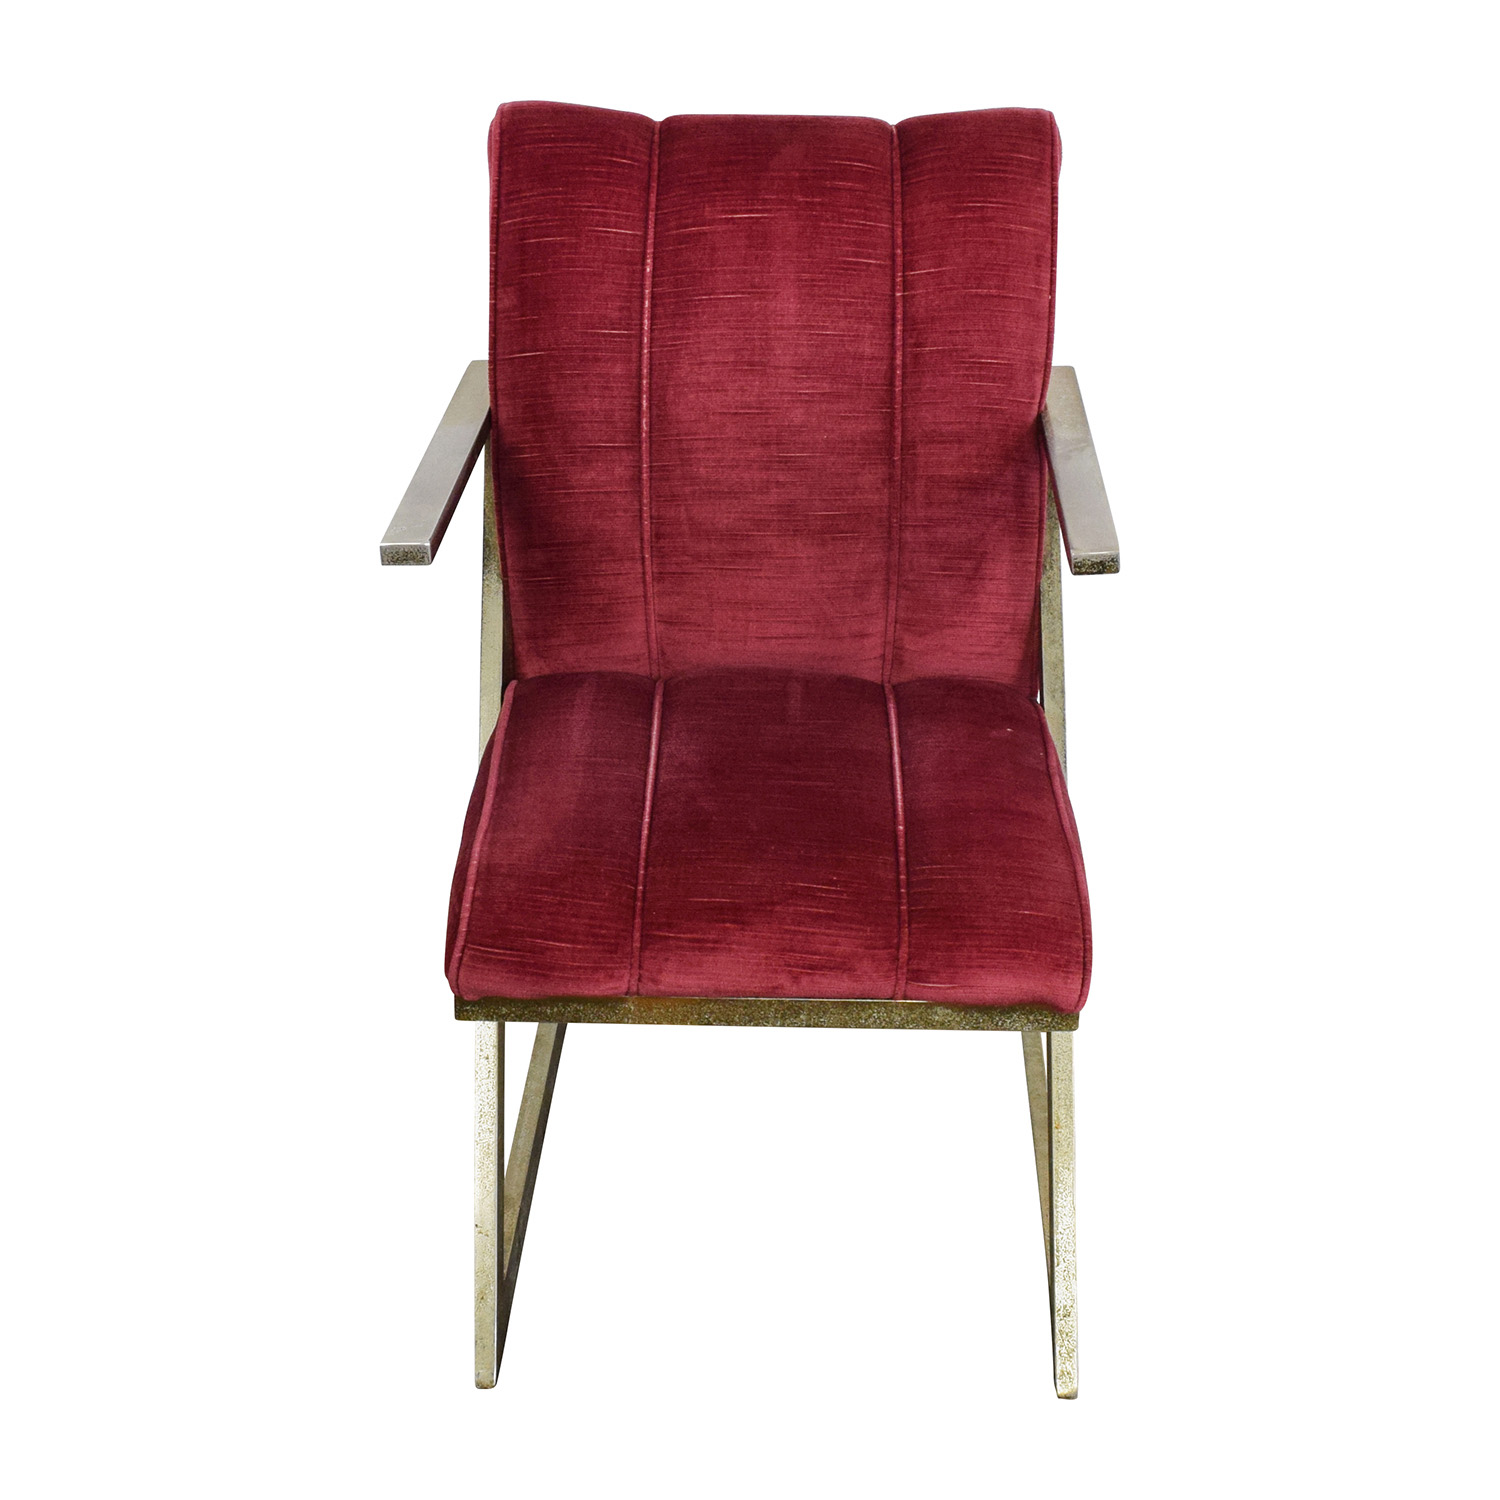 Vintage Plush Burgundy Velvet Chair / Sofas